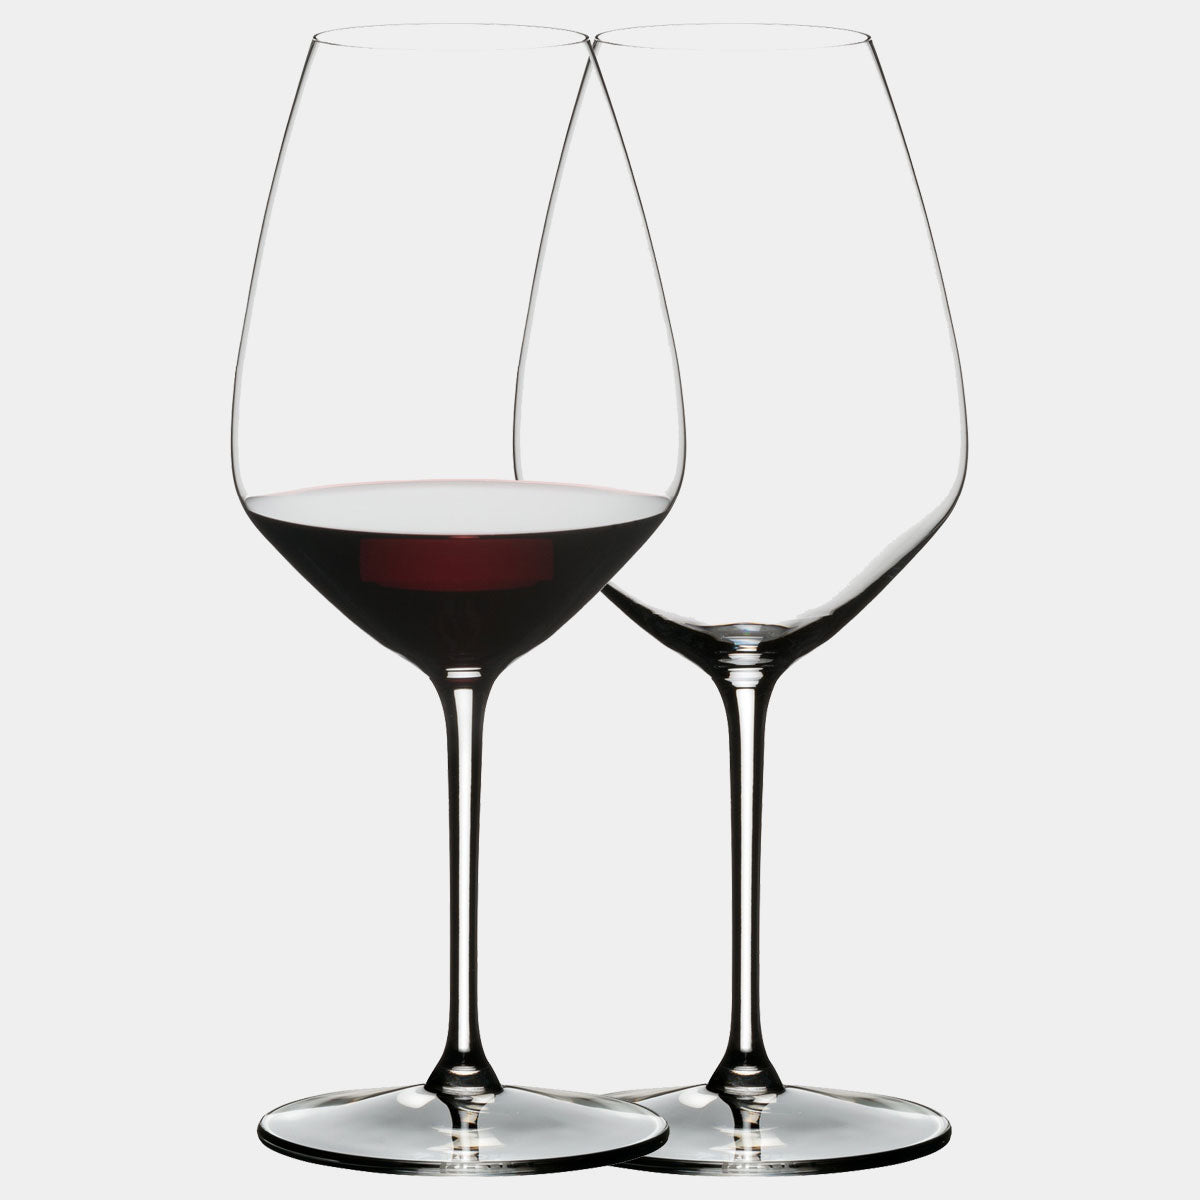 Riedel Xtreme 2 copas Shiraz - Wines and Copas Barcelona